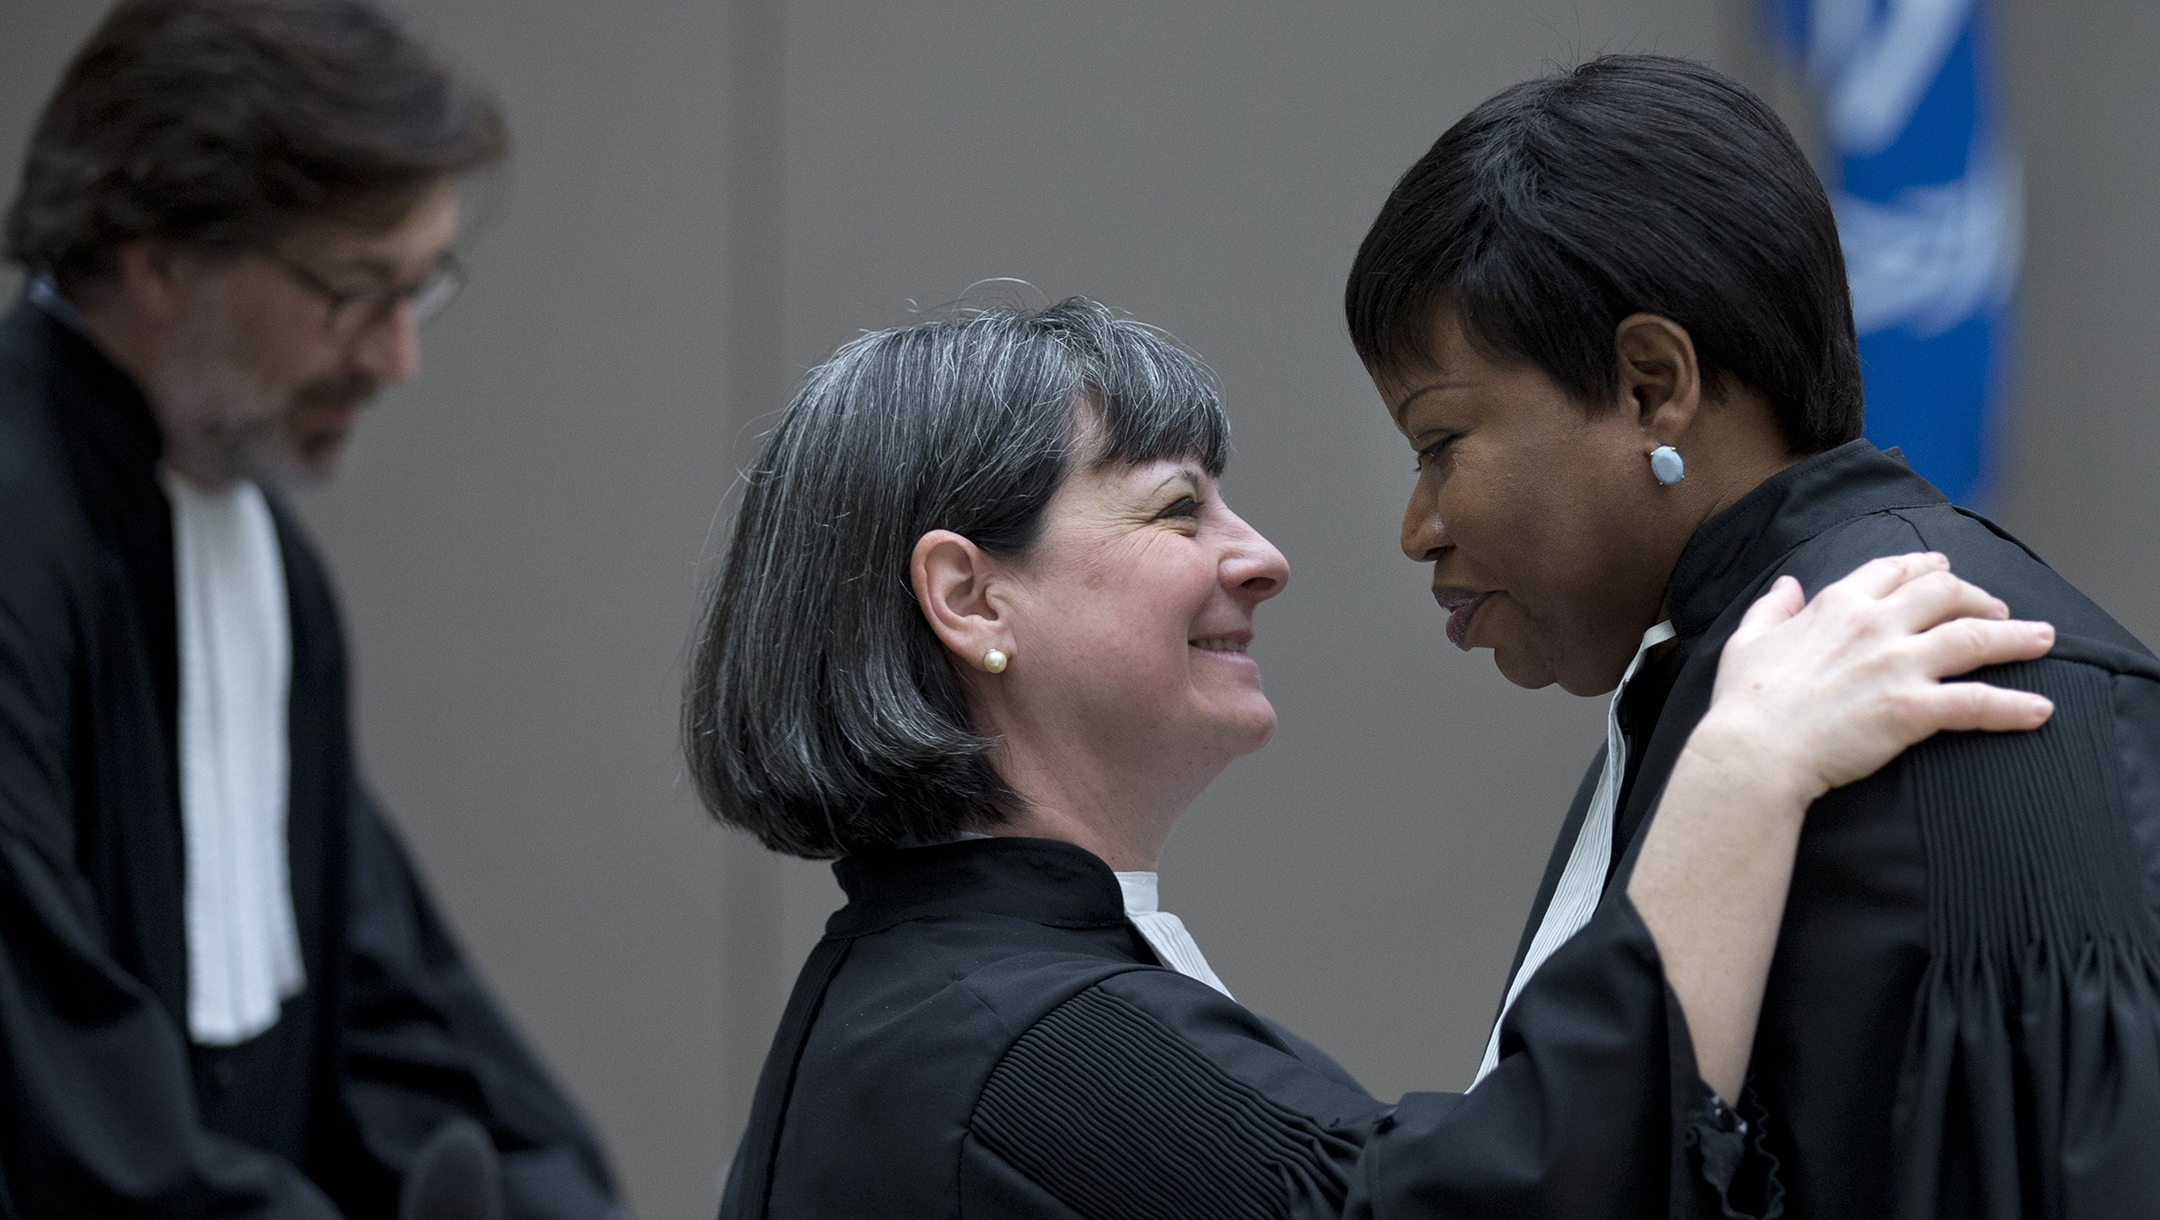 ICC prosecutor Fatou Bensouda, right, and attorney Paolina Massidda wait for the start of a trial against Ivorian former officials at the International Criminal Court in The Hague, the Netherlands on January 28, 2016(Peter Dejong/AFP via Getty Images)